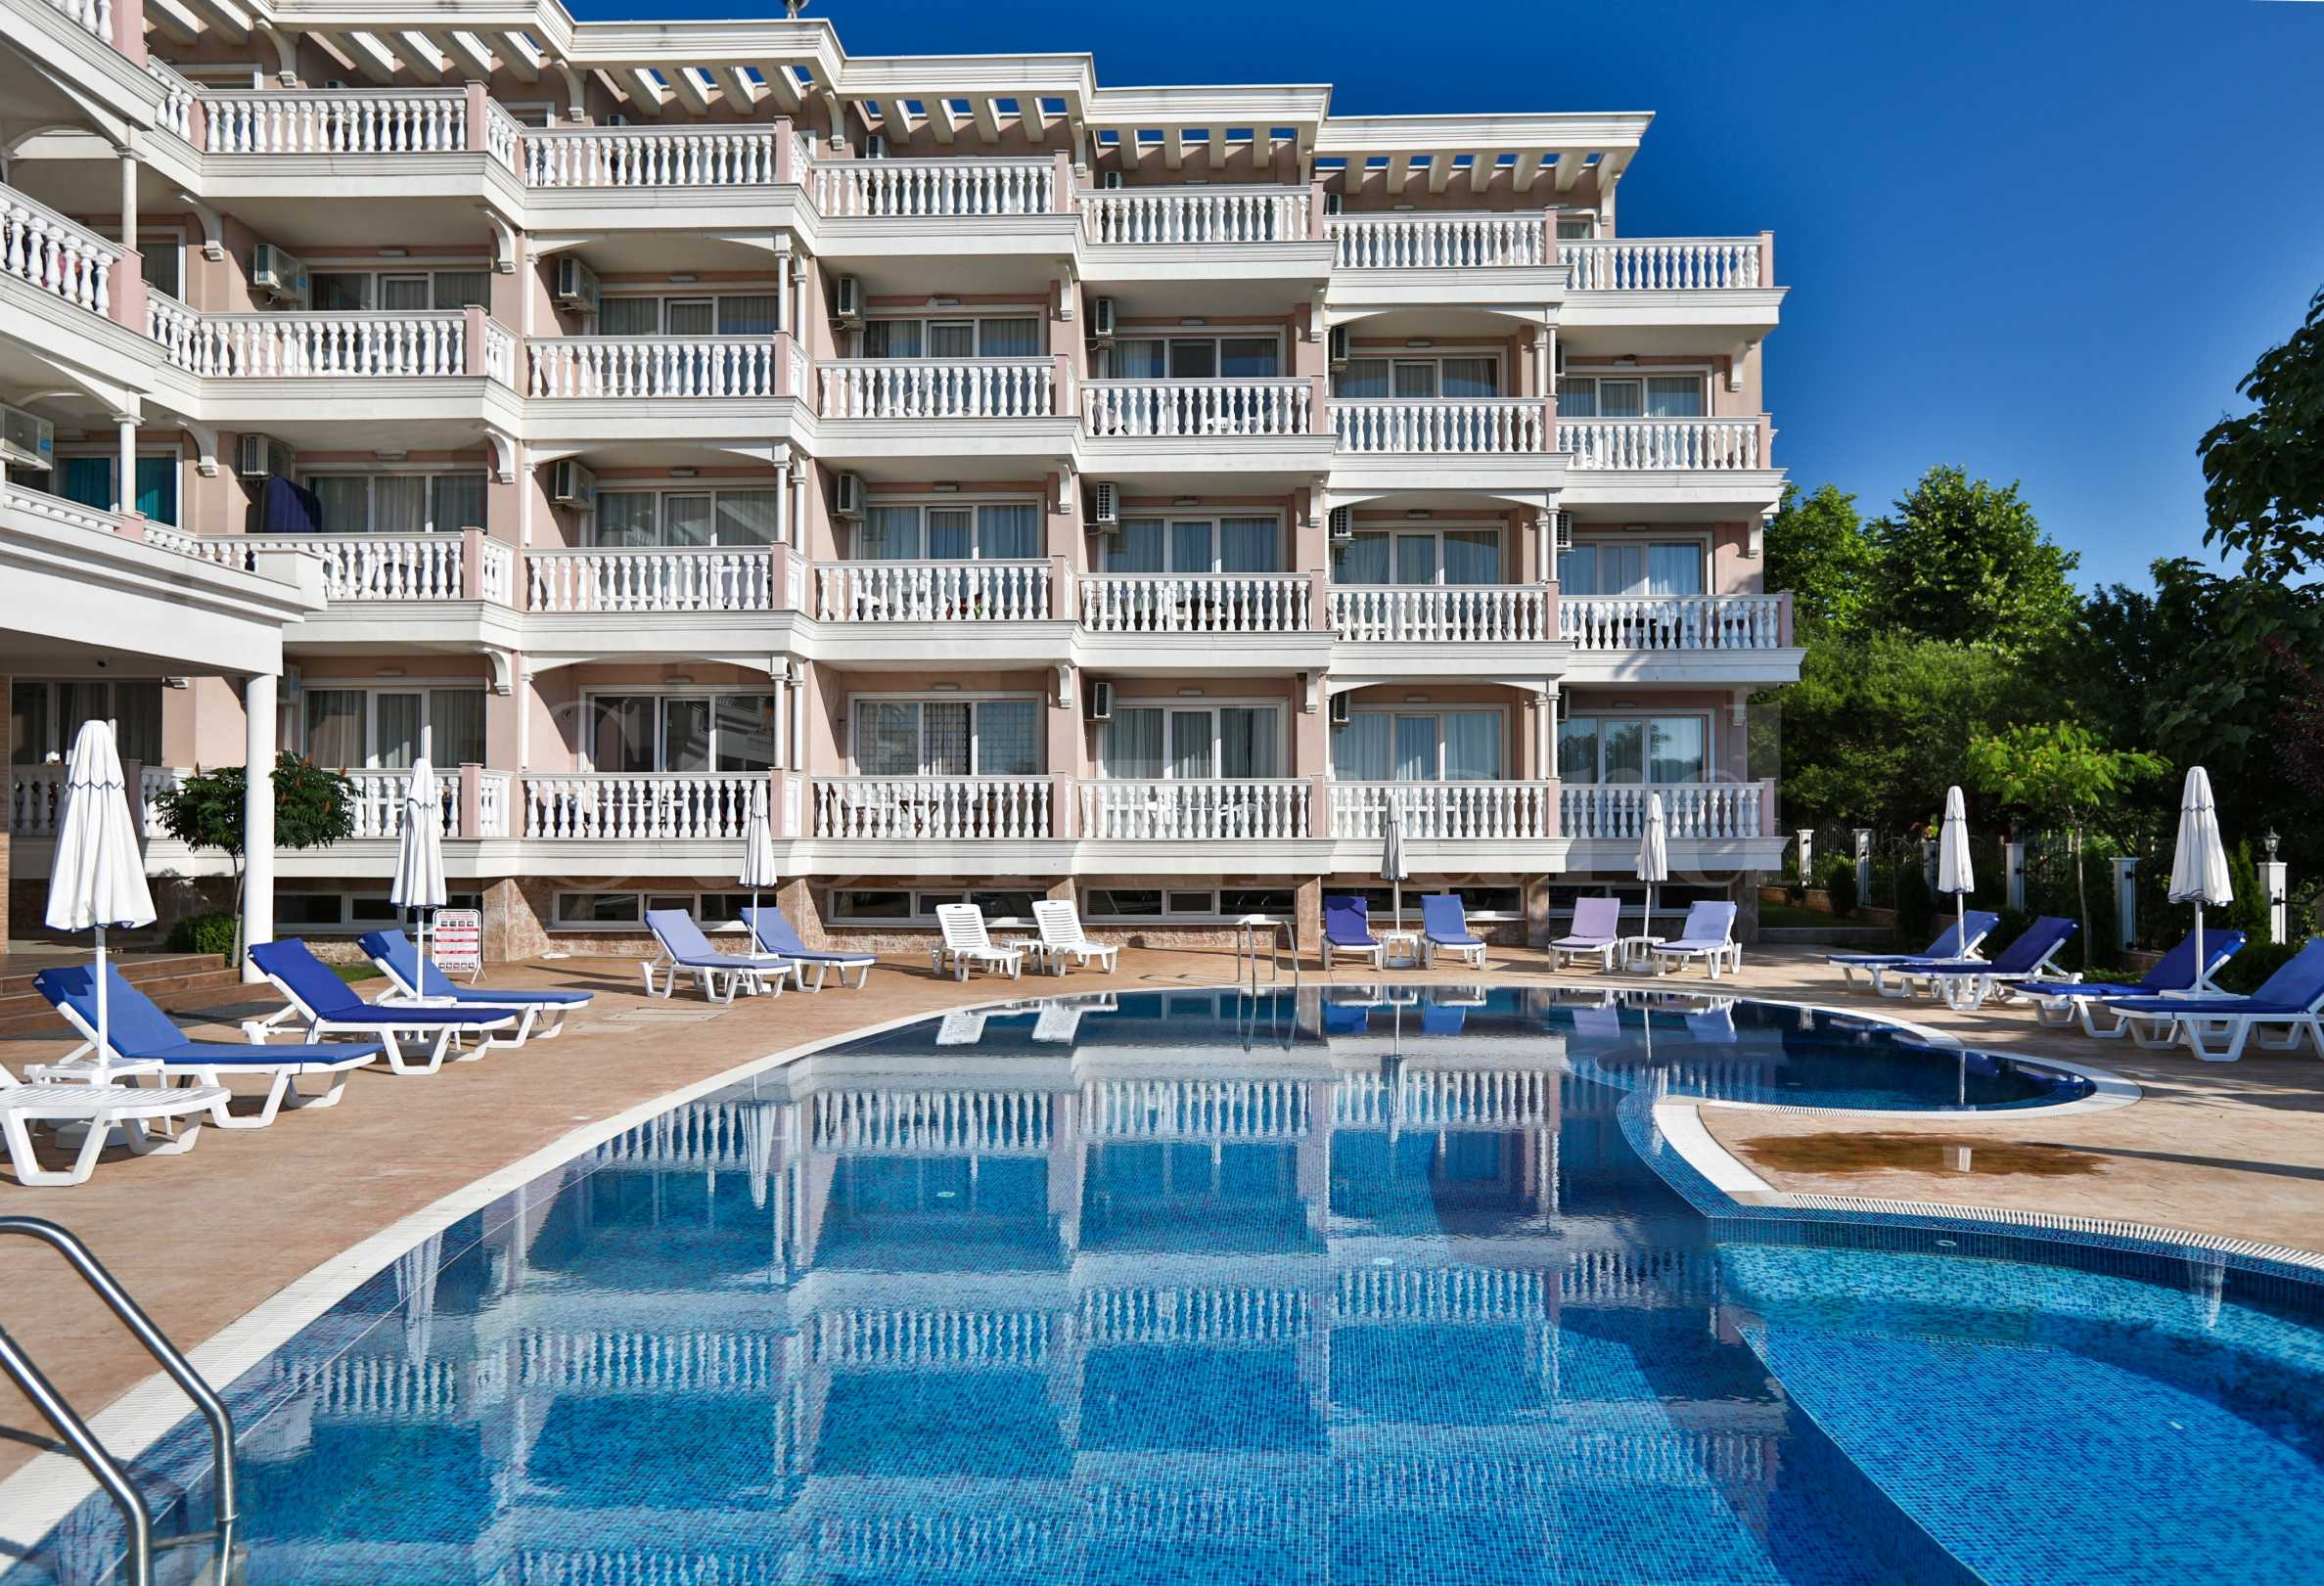 Furnished apartments in a completed waterfront complex by the beach1 - Stonehard